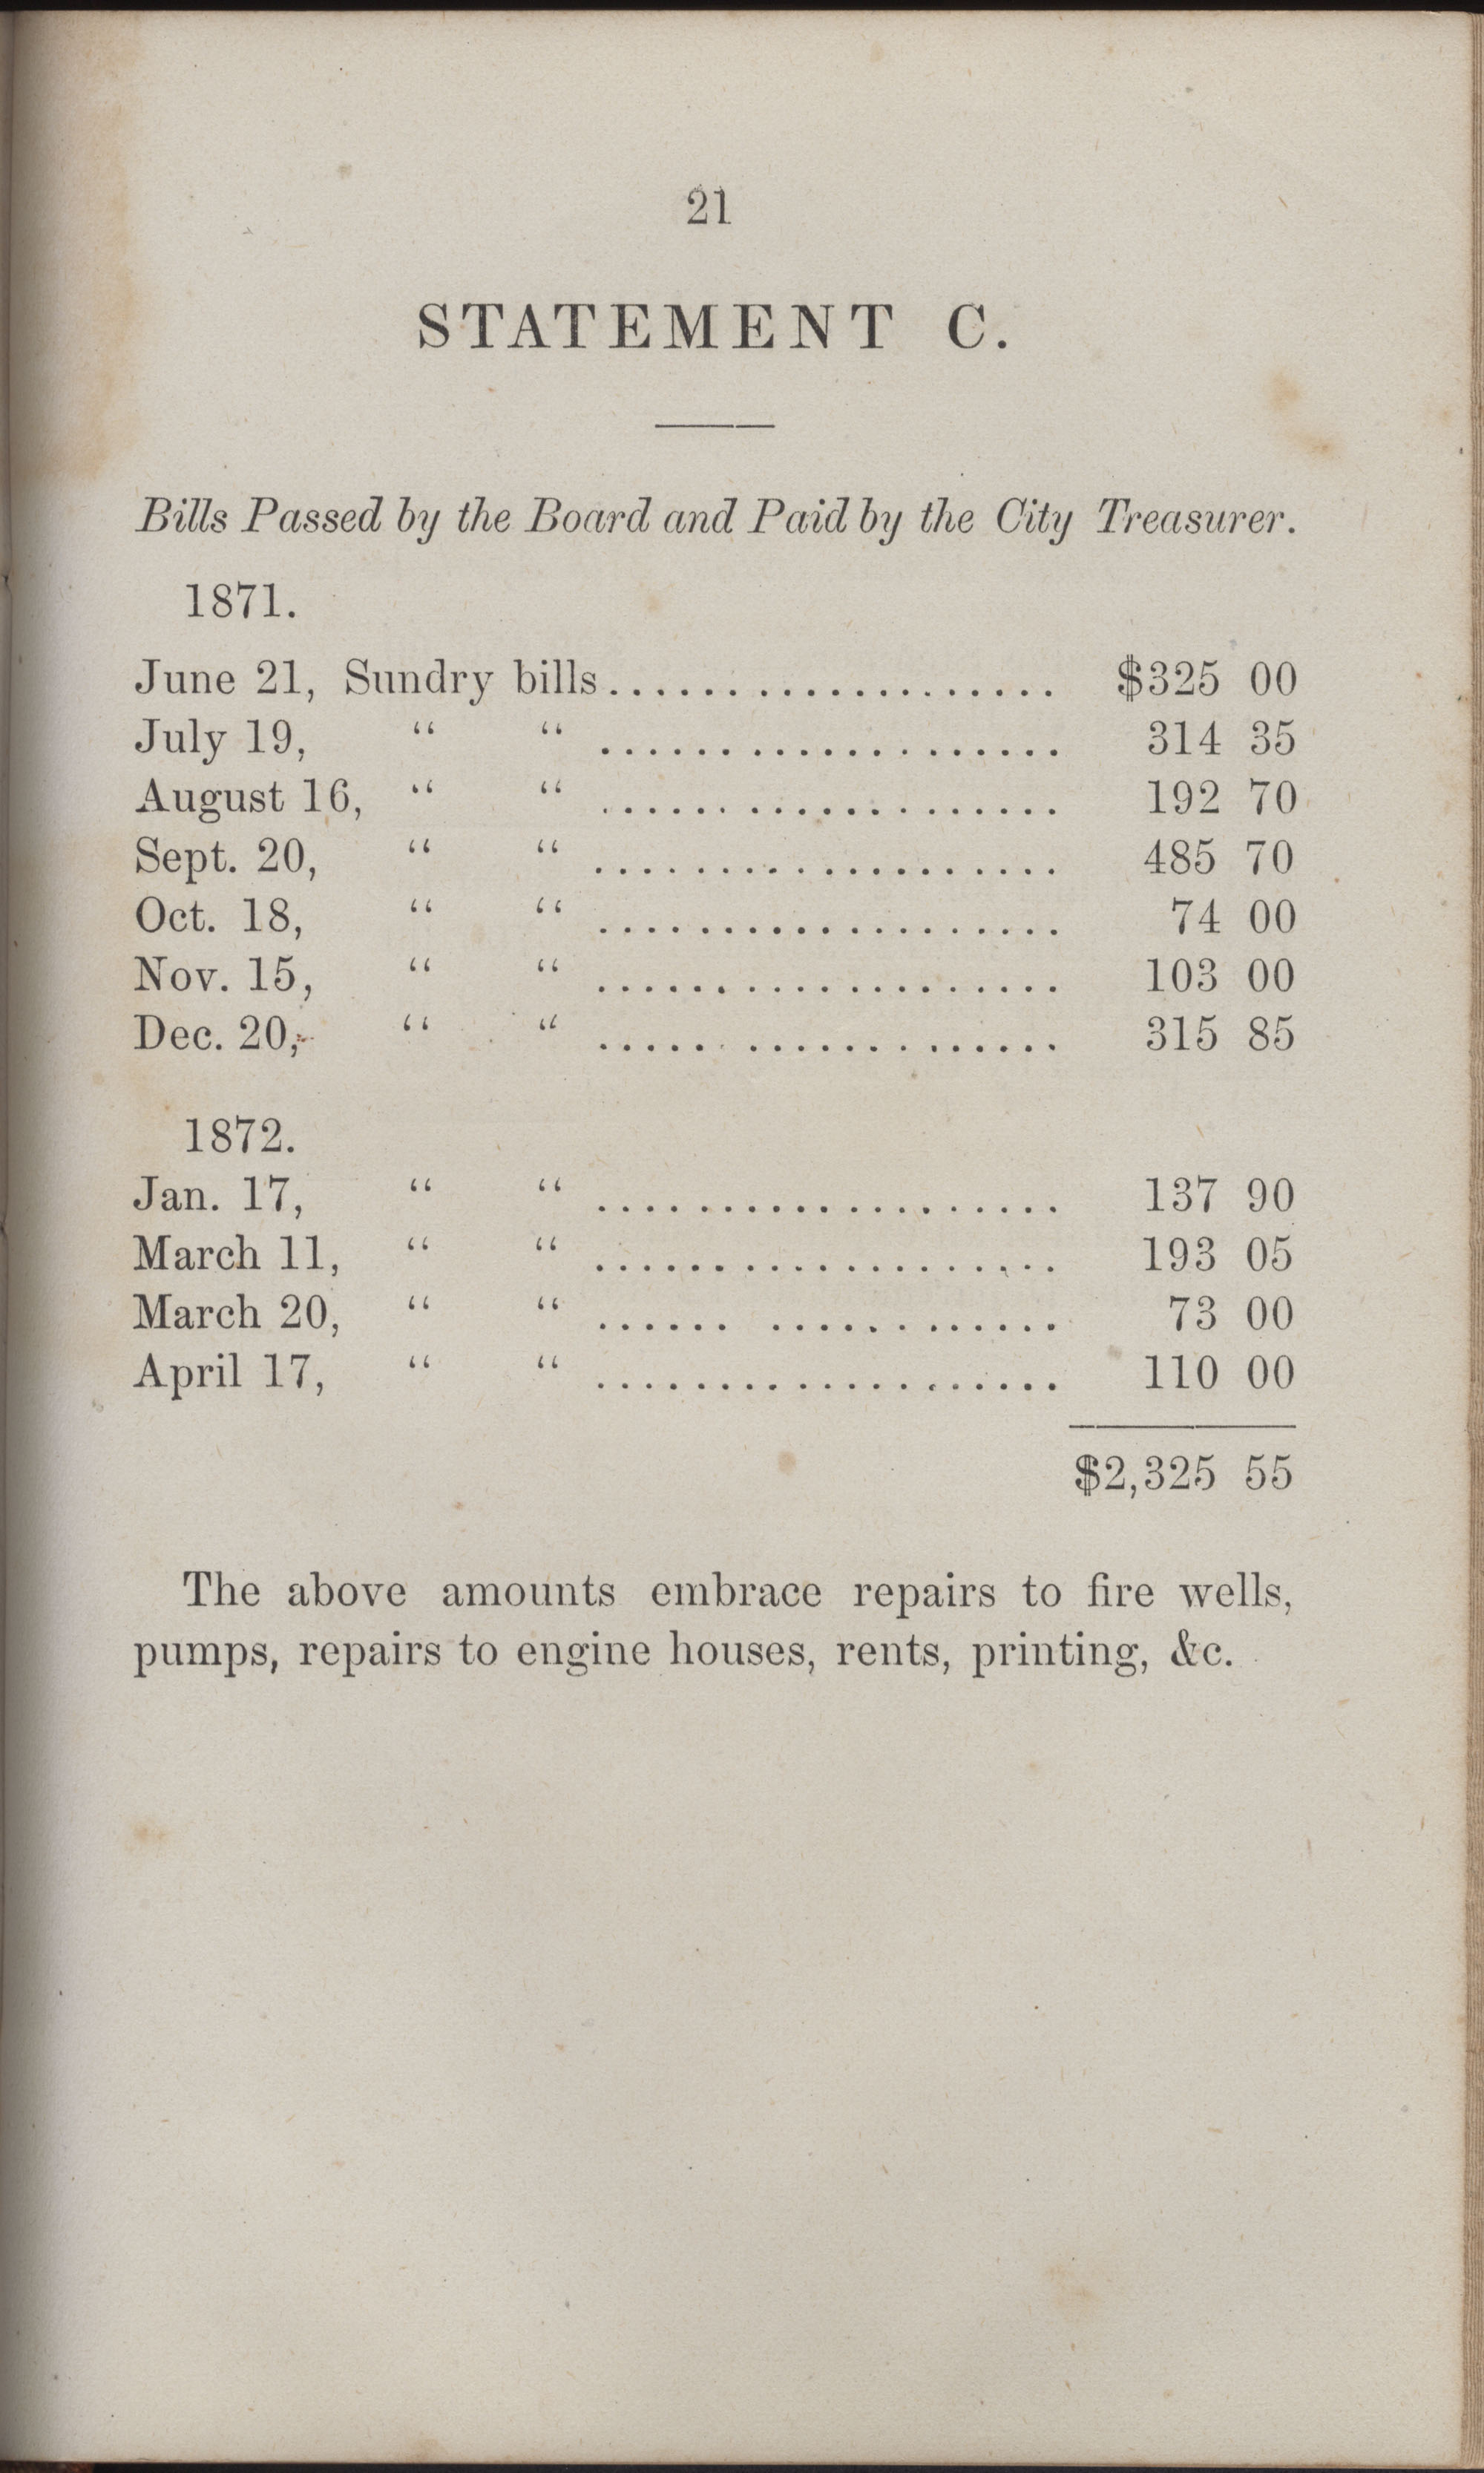 Annual Report of the Chief of the Fire Department of the City of Charleston, page 416